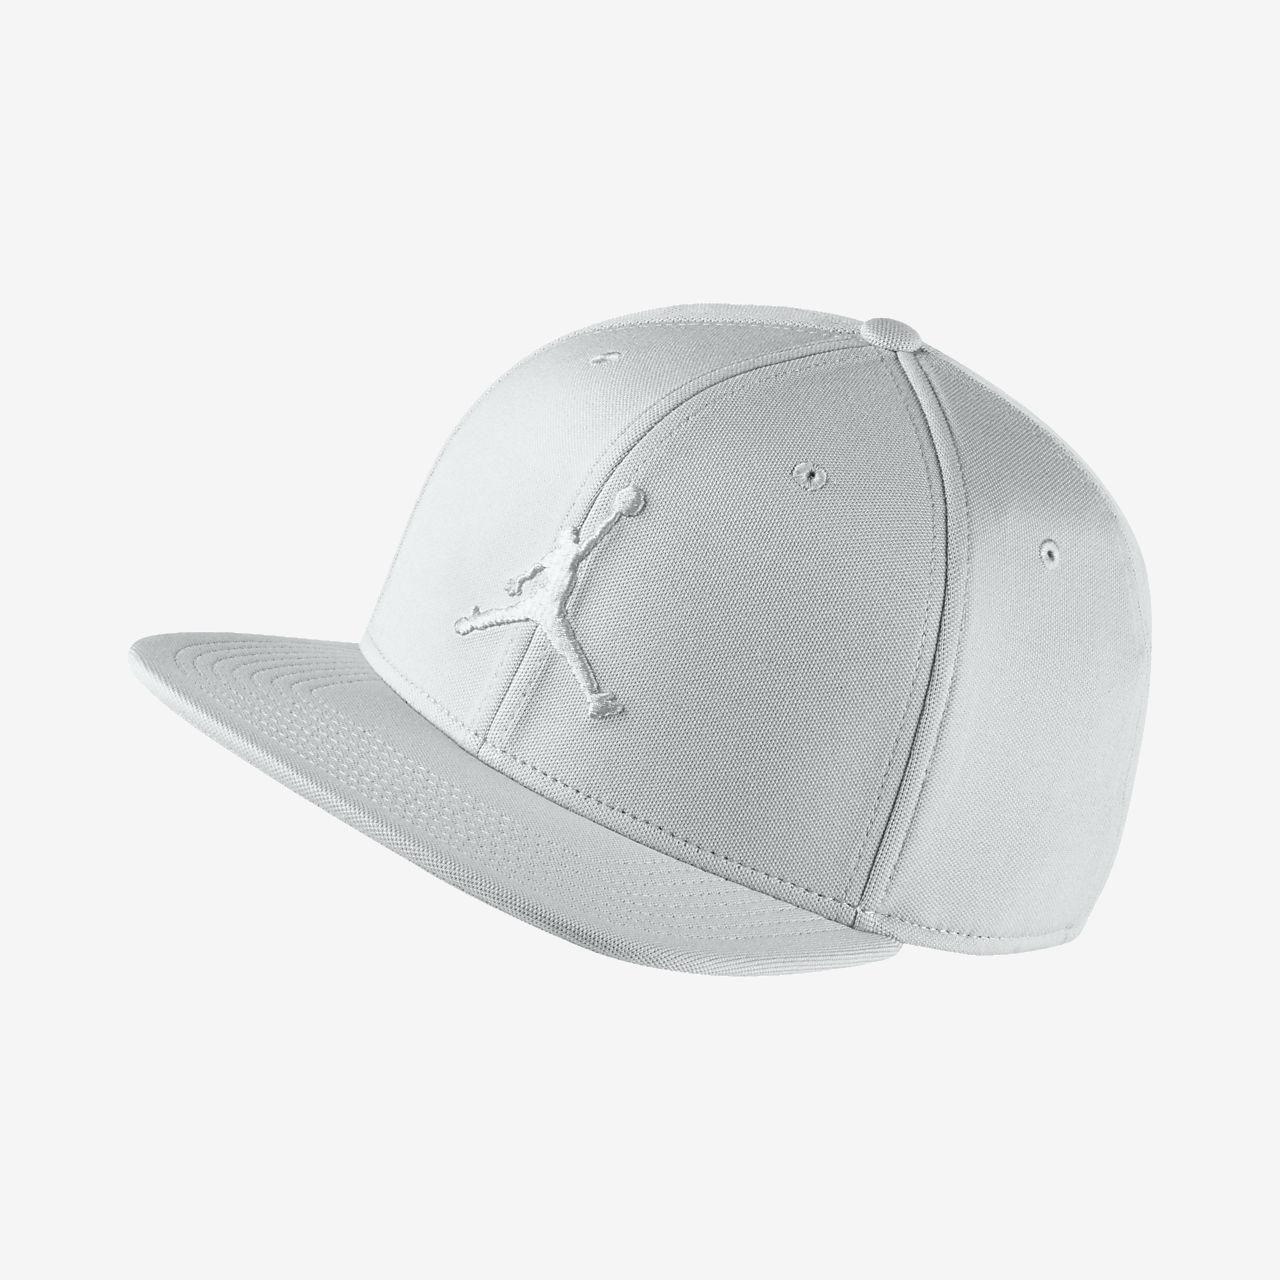 986e7b7b4 Jordan Jumpman Snapback Adjustable Hat